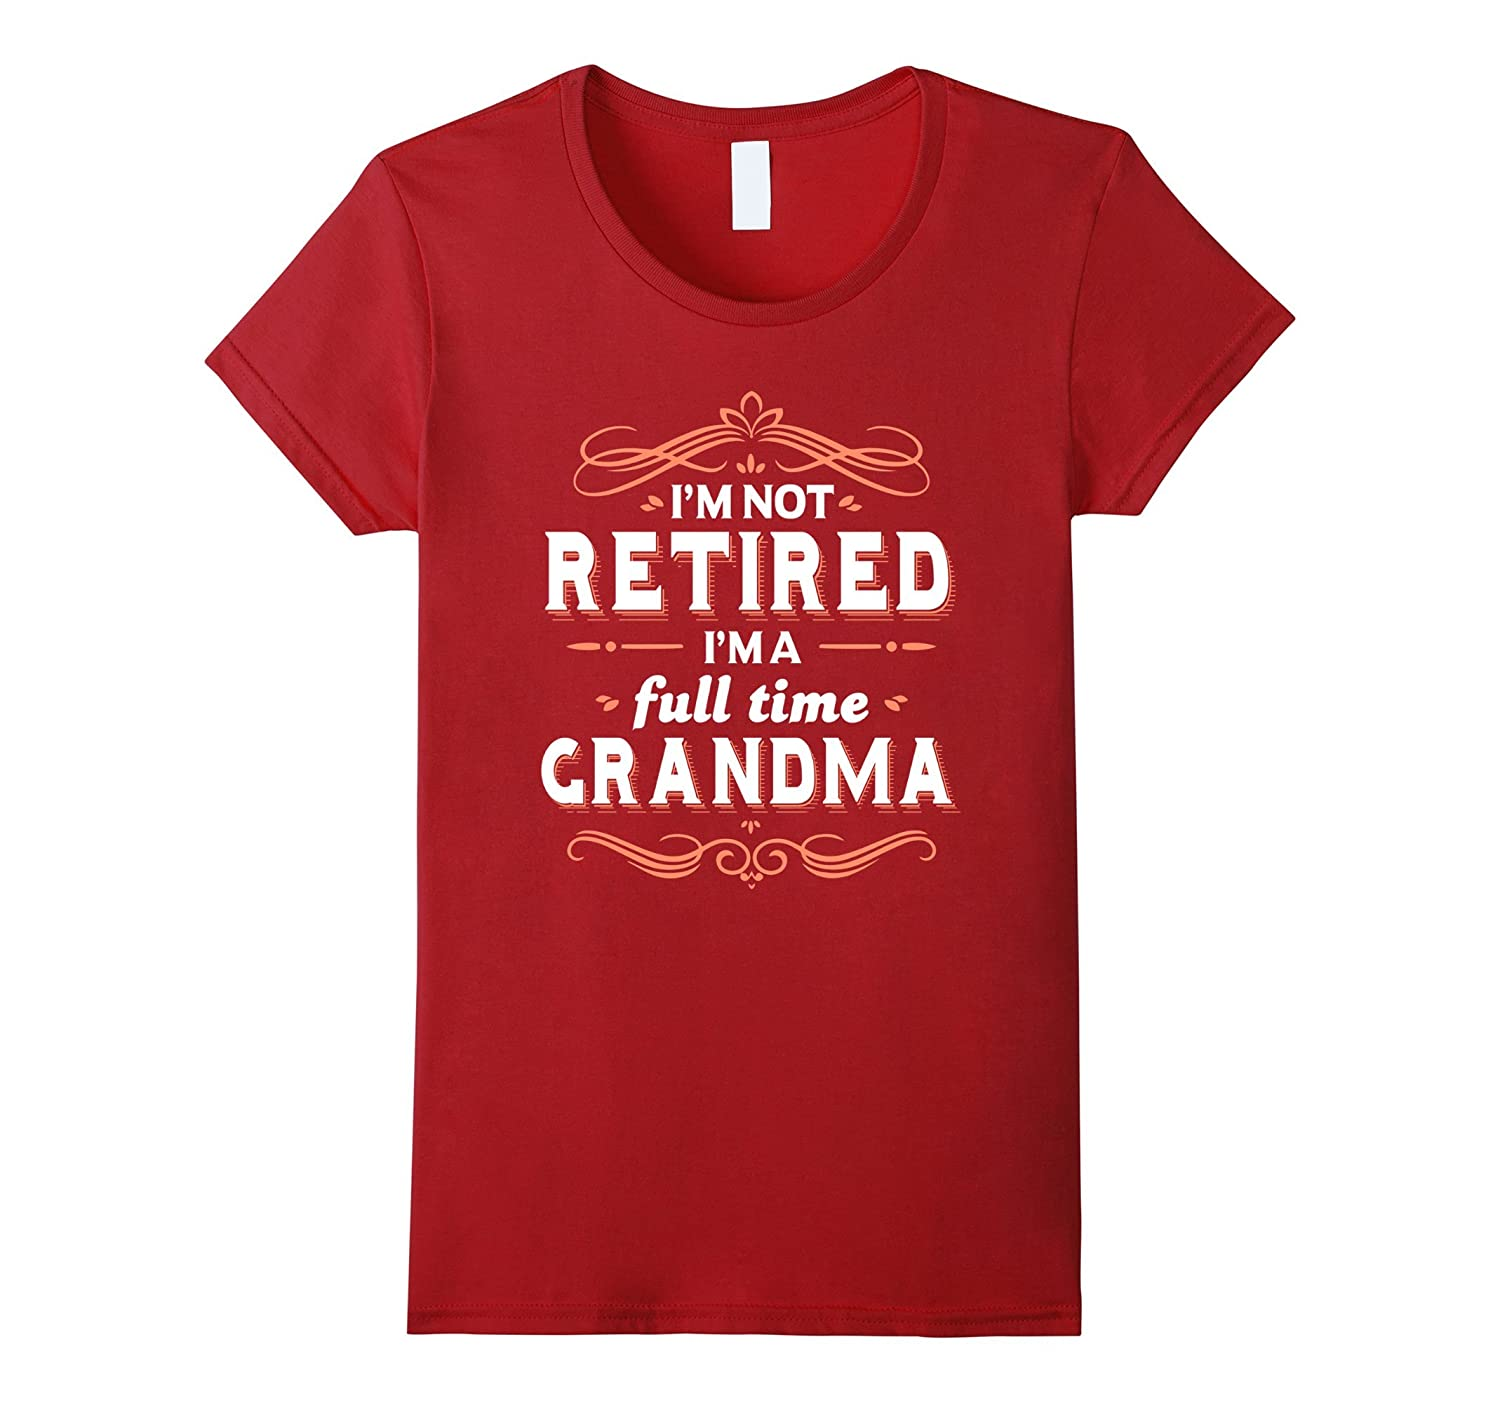 Retirement T-shirt Gift Not Retired I'm a Full time Grandma